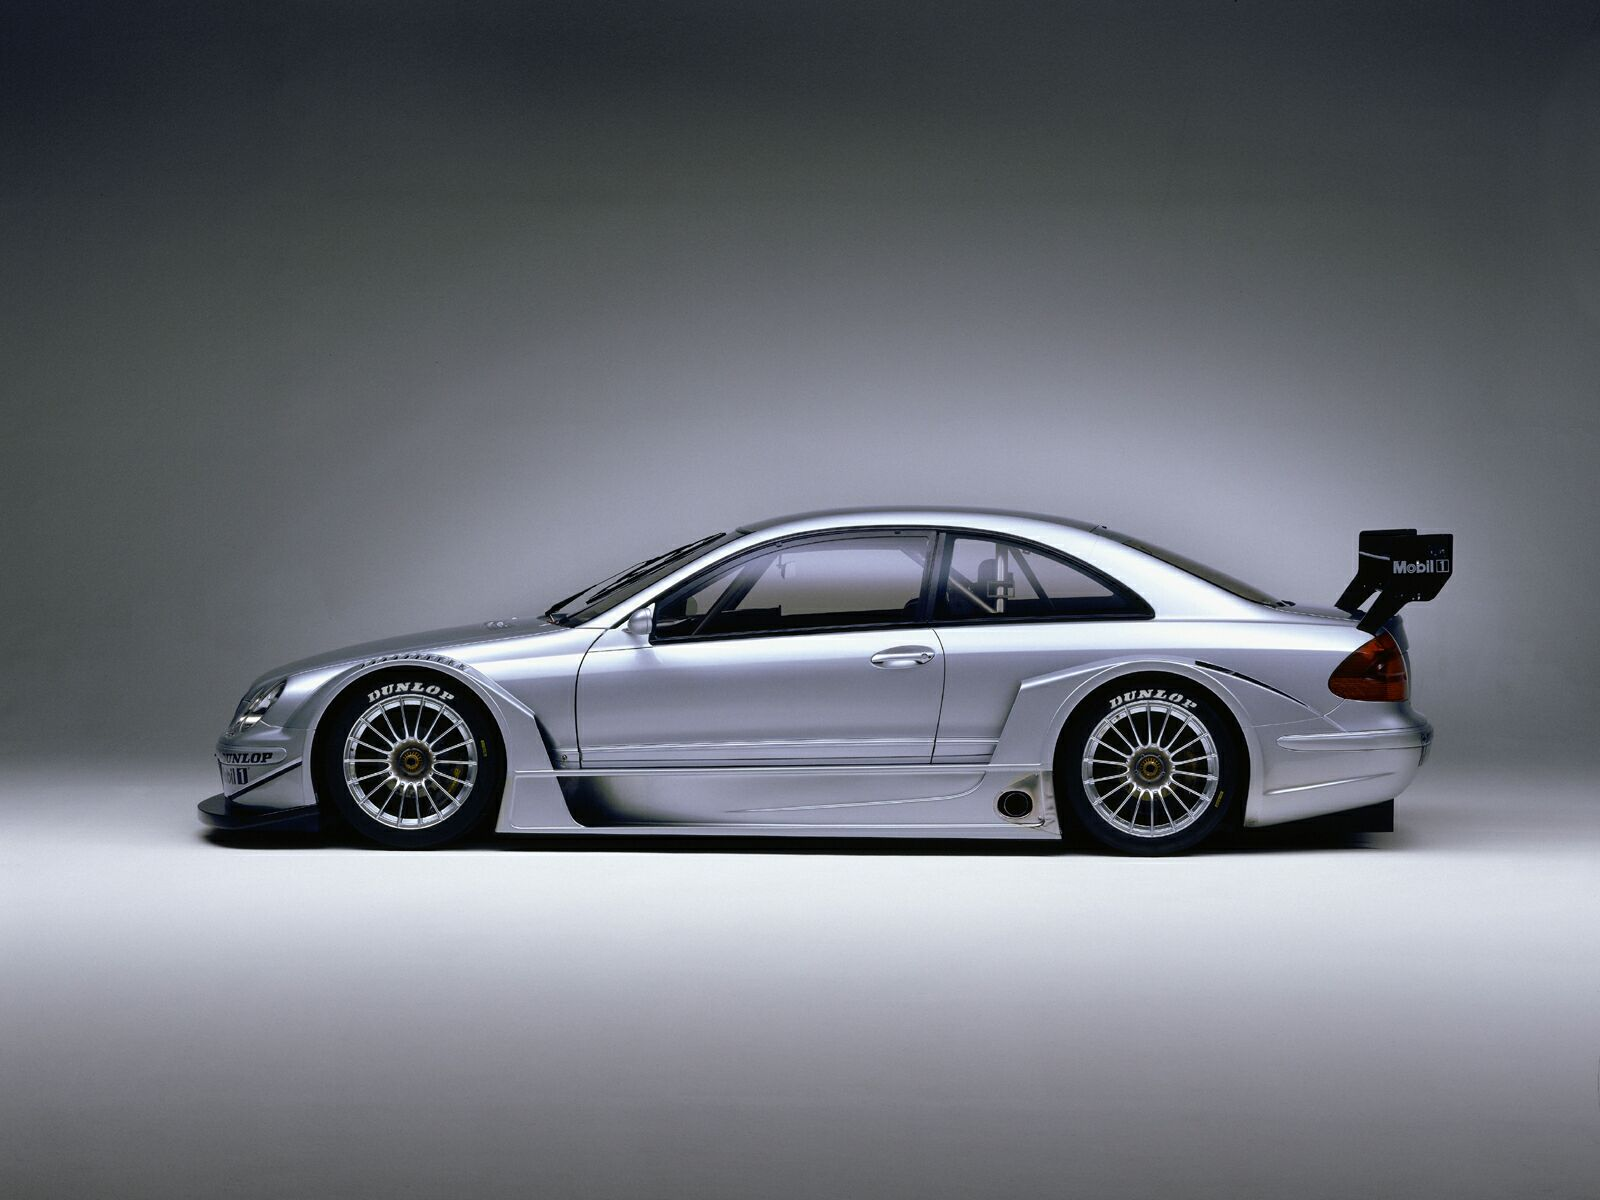 Mercedes-Benz CLK 55 AMG photo 13